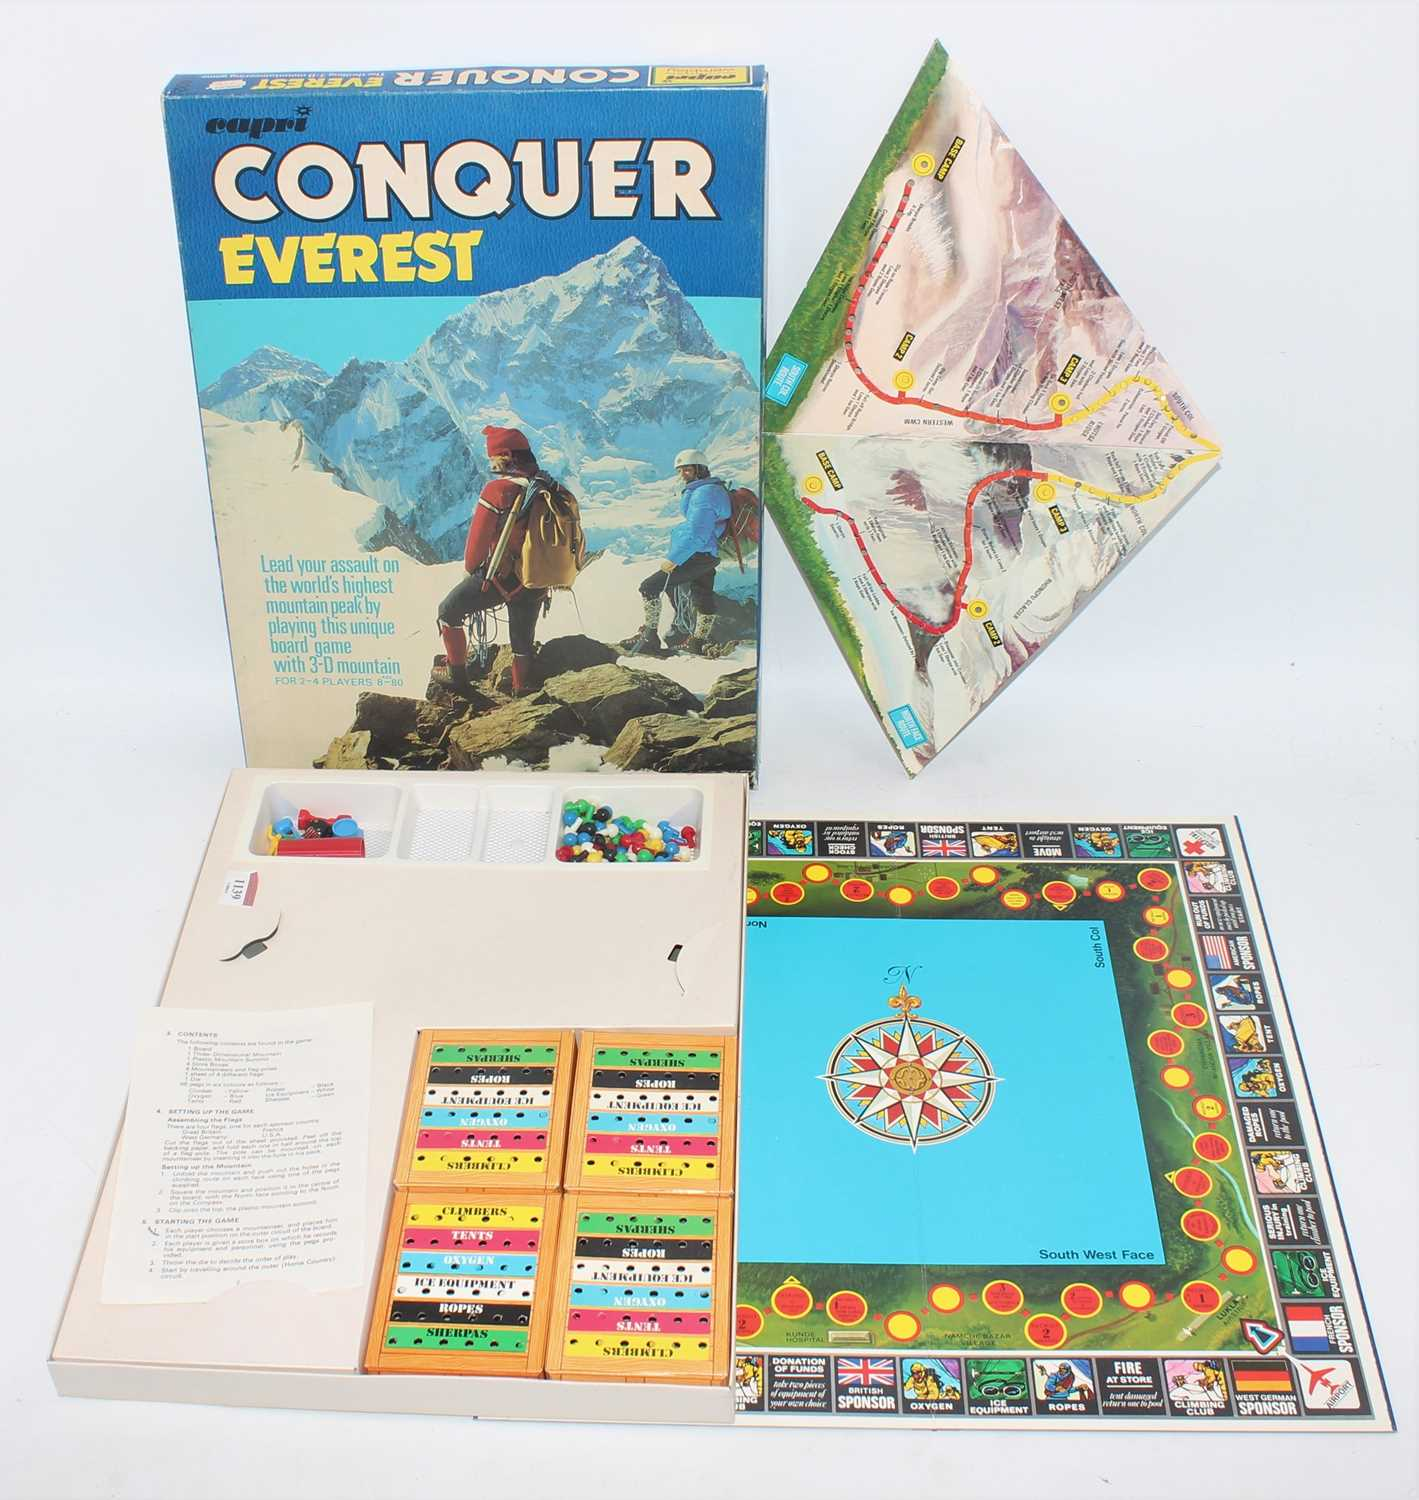 A Capri recommended by Wembley, Conquer Everest 3D mountaineering board game, housed in the original